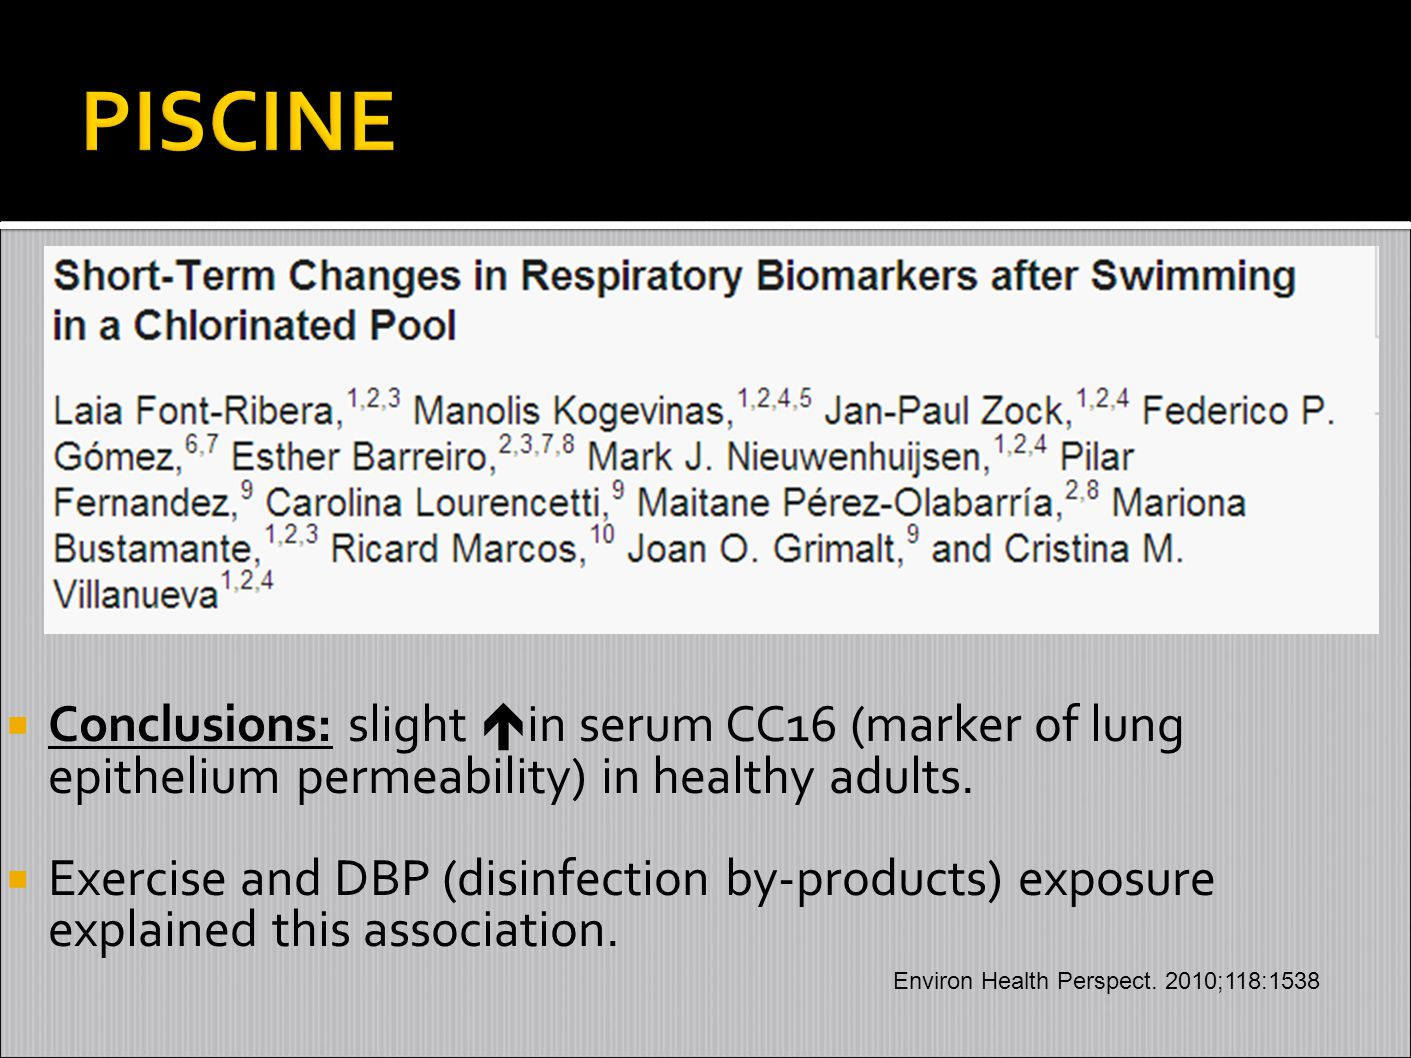 PISCINE Conclusions: slight in serum CC16 (marker of lung epithelium permeability) in healthy adults.